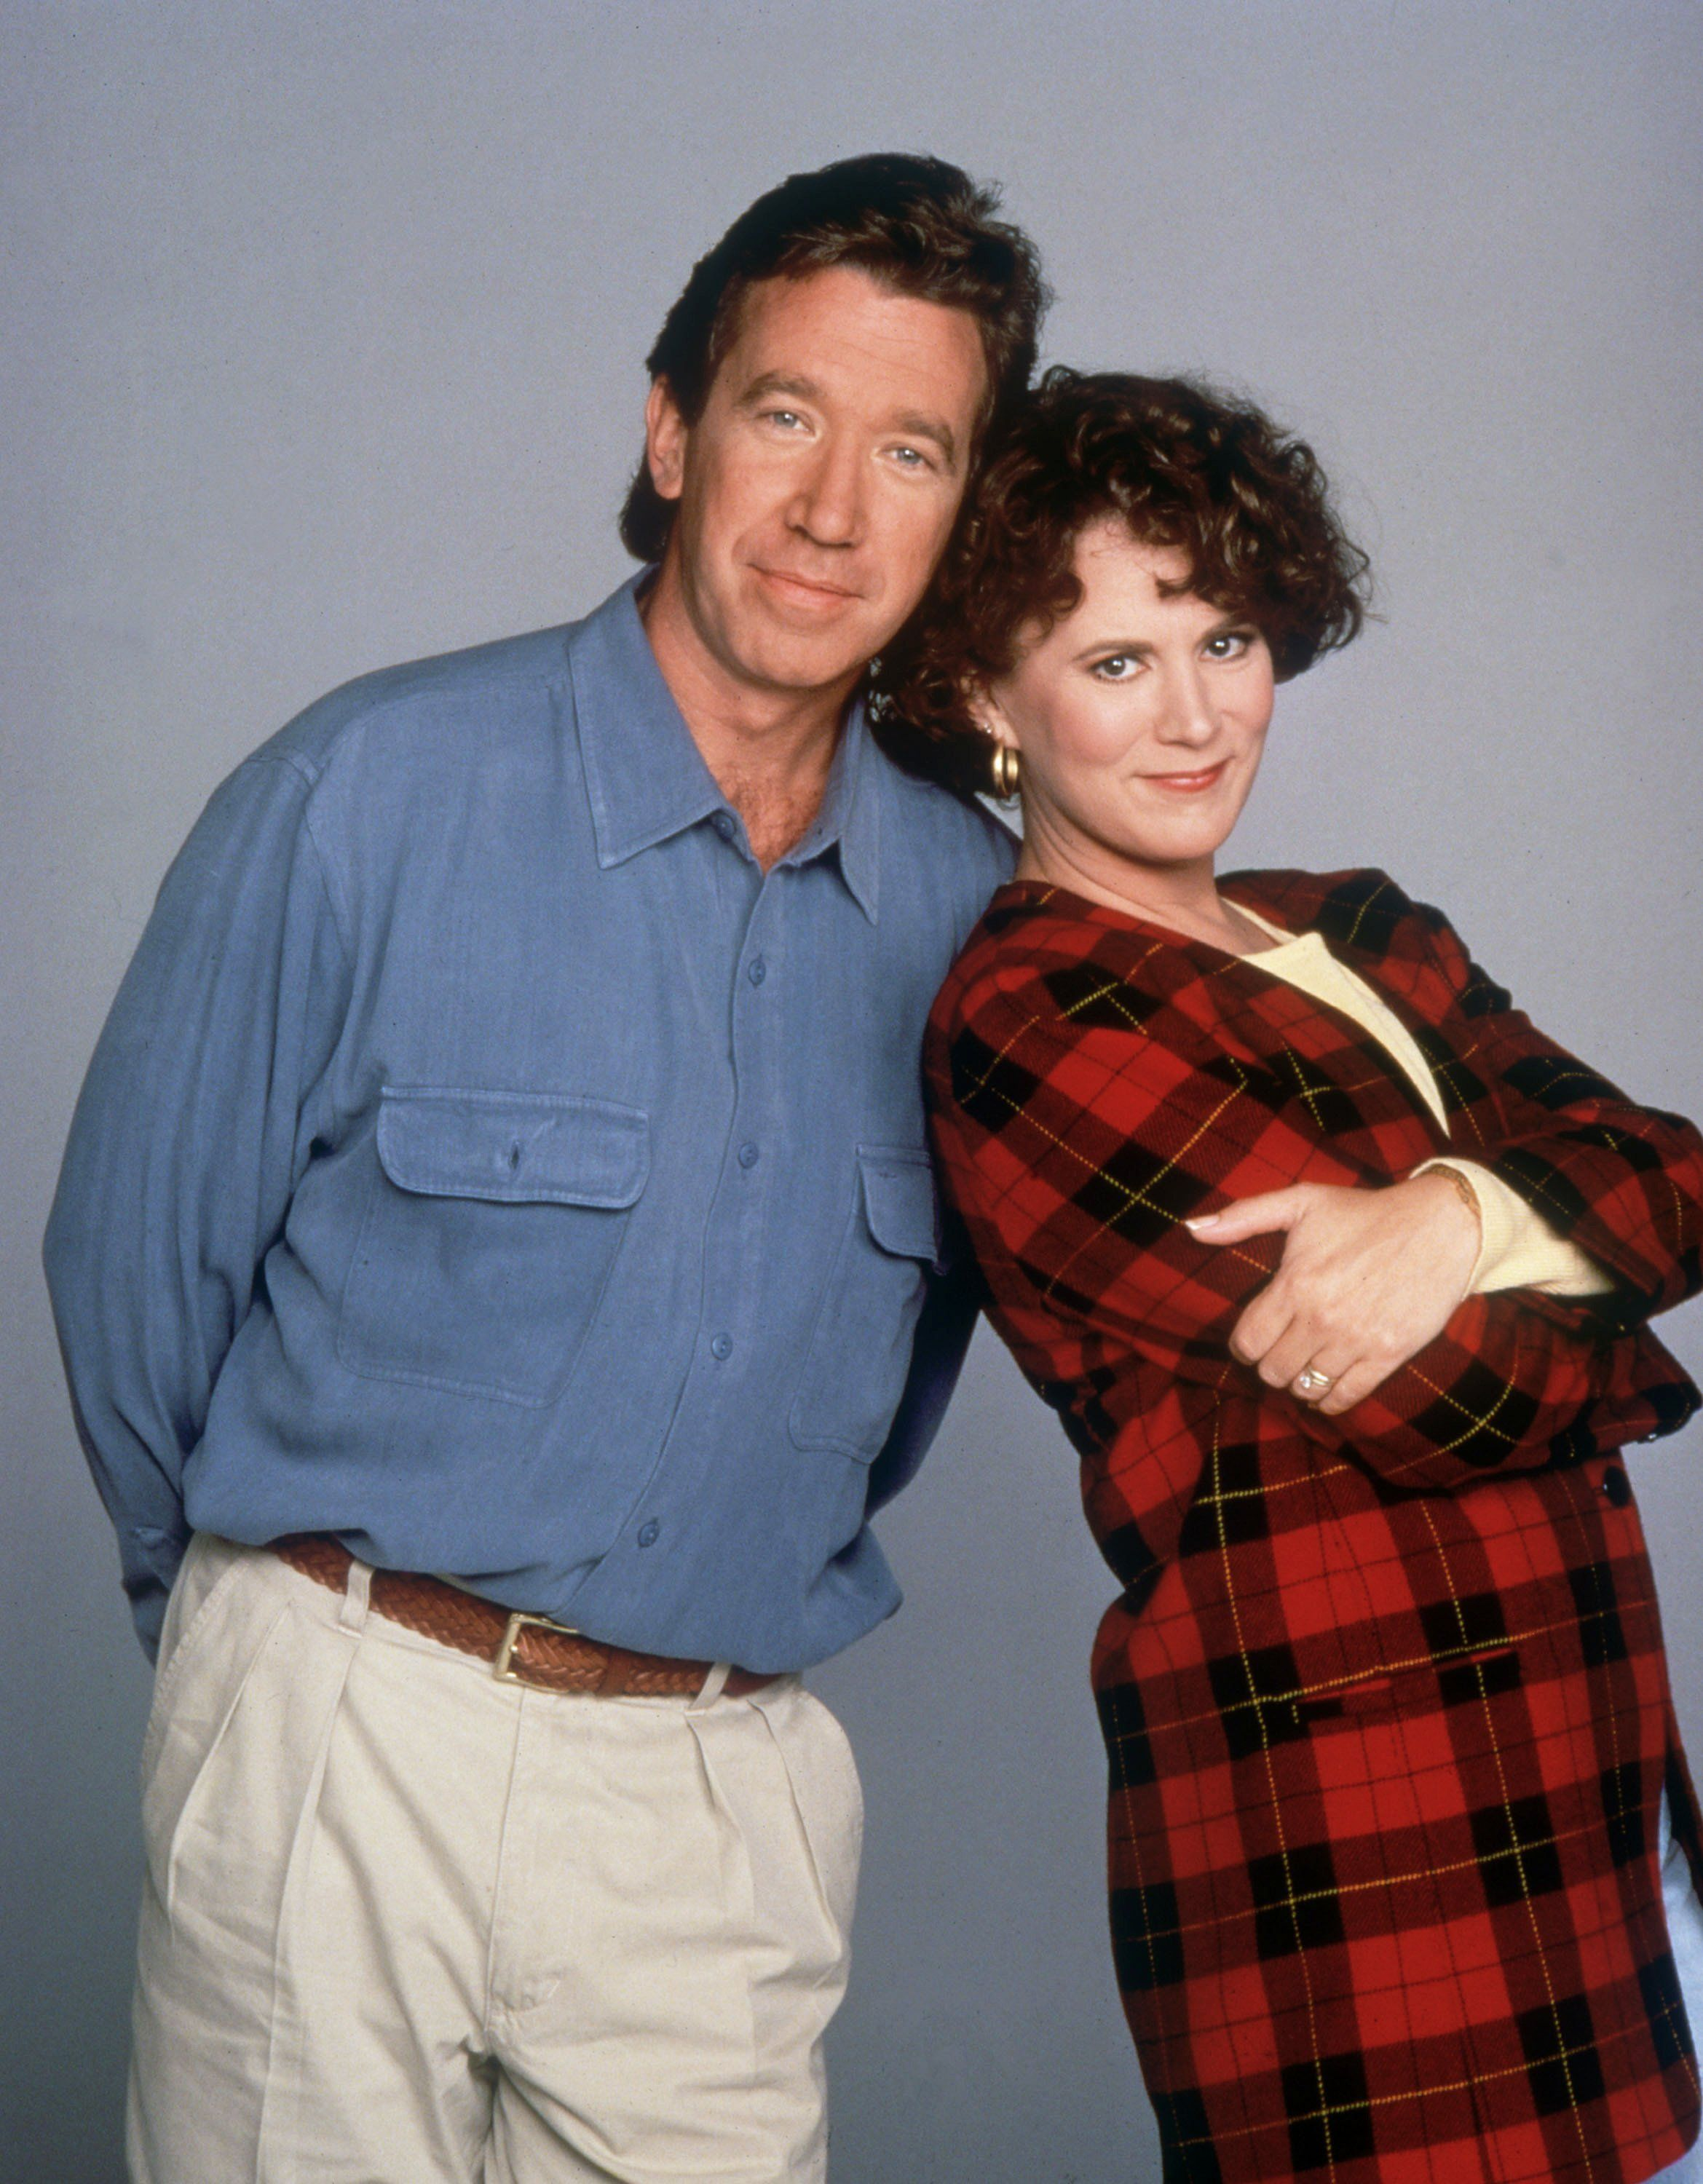 Patricia Richardson And Tim Allen From Home Improvment Home Improvement Tv Show Patricia Richardson Home Improvement